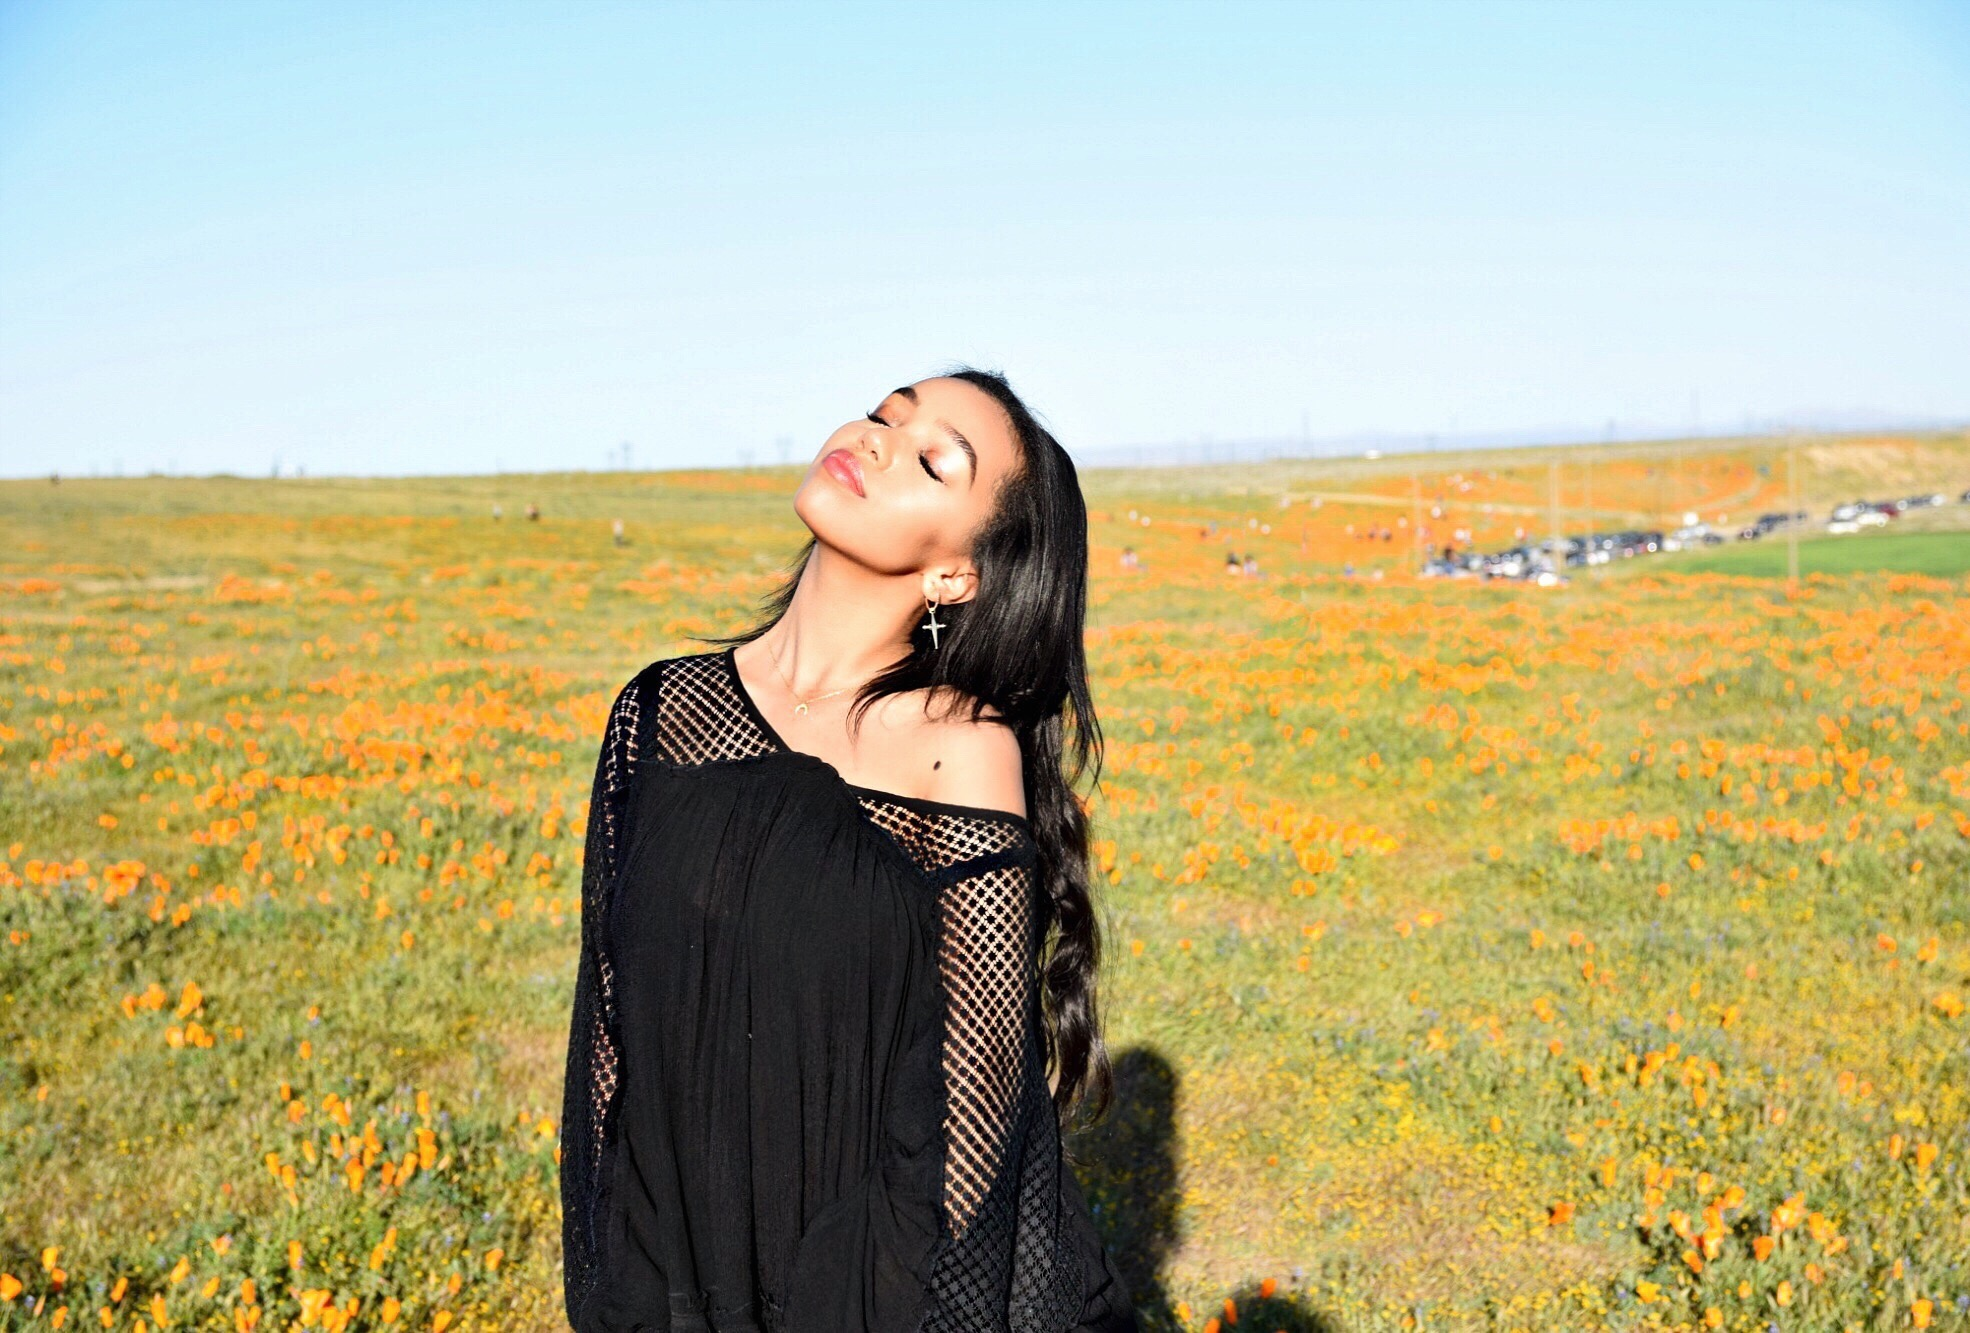 Free People Spring/Summer Campaign // The Antelope Valley Poppy Fields in Southern California // Free People Don't You Want Me Tunic // Free People Sonnet Clogs // Free People Studded Suede Party Pouch // Spring Style OOTD // Los Angeles Fashion Blogger Daphne Blunt: To Style, With Love